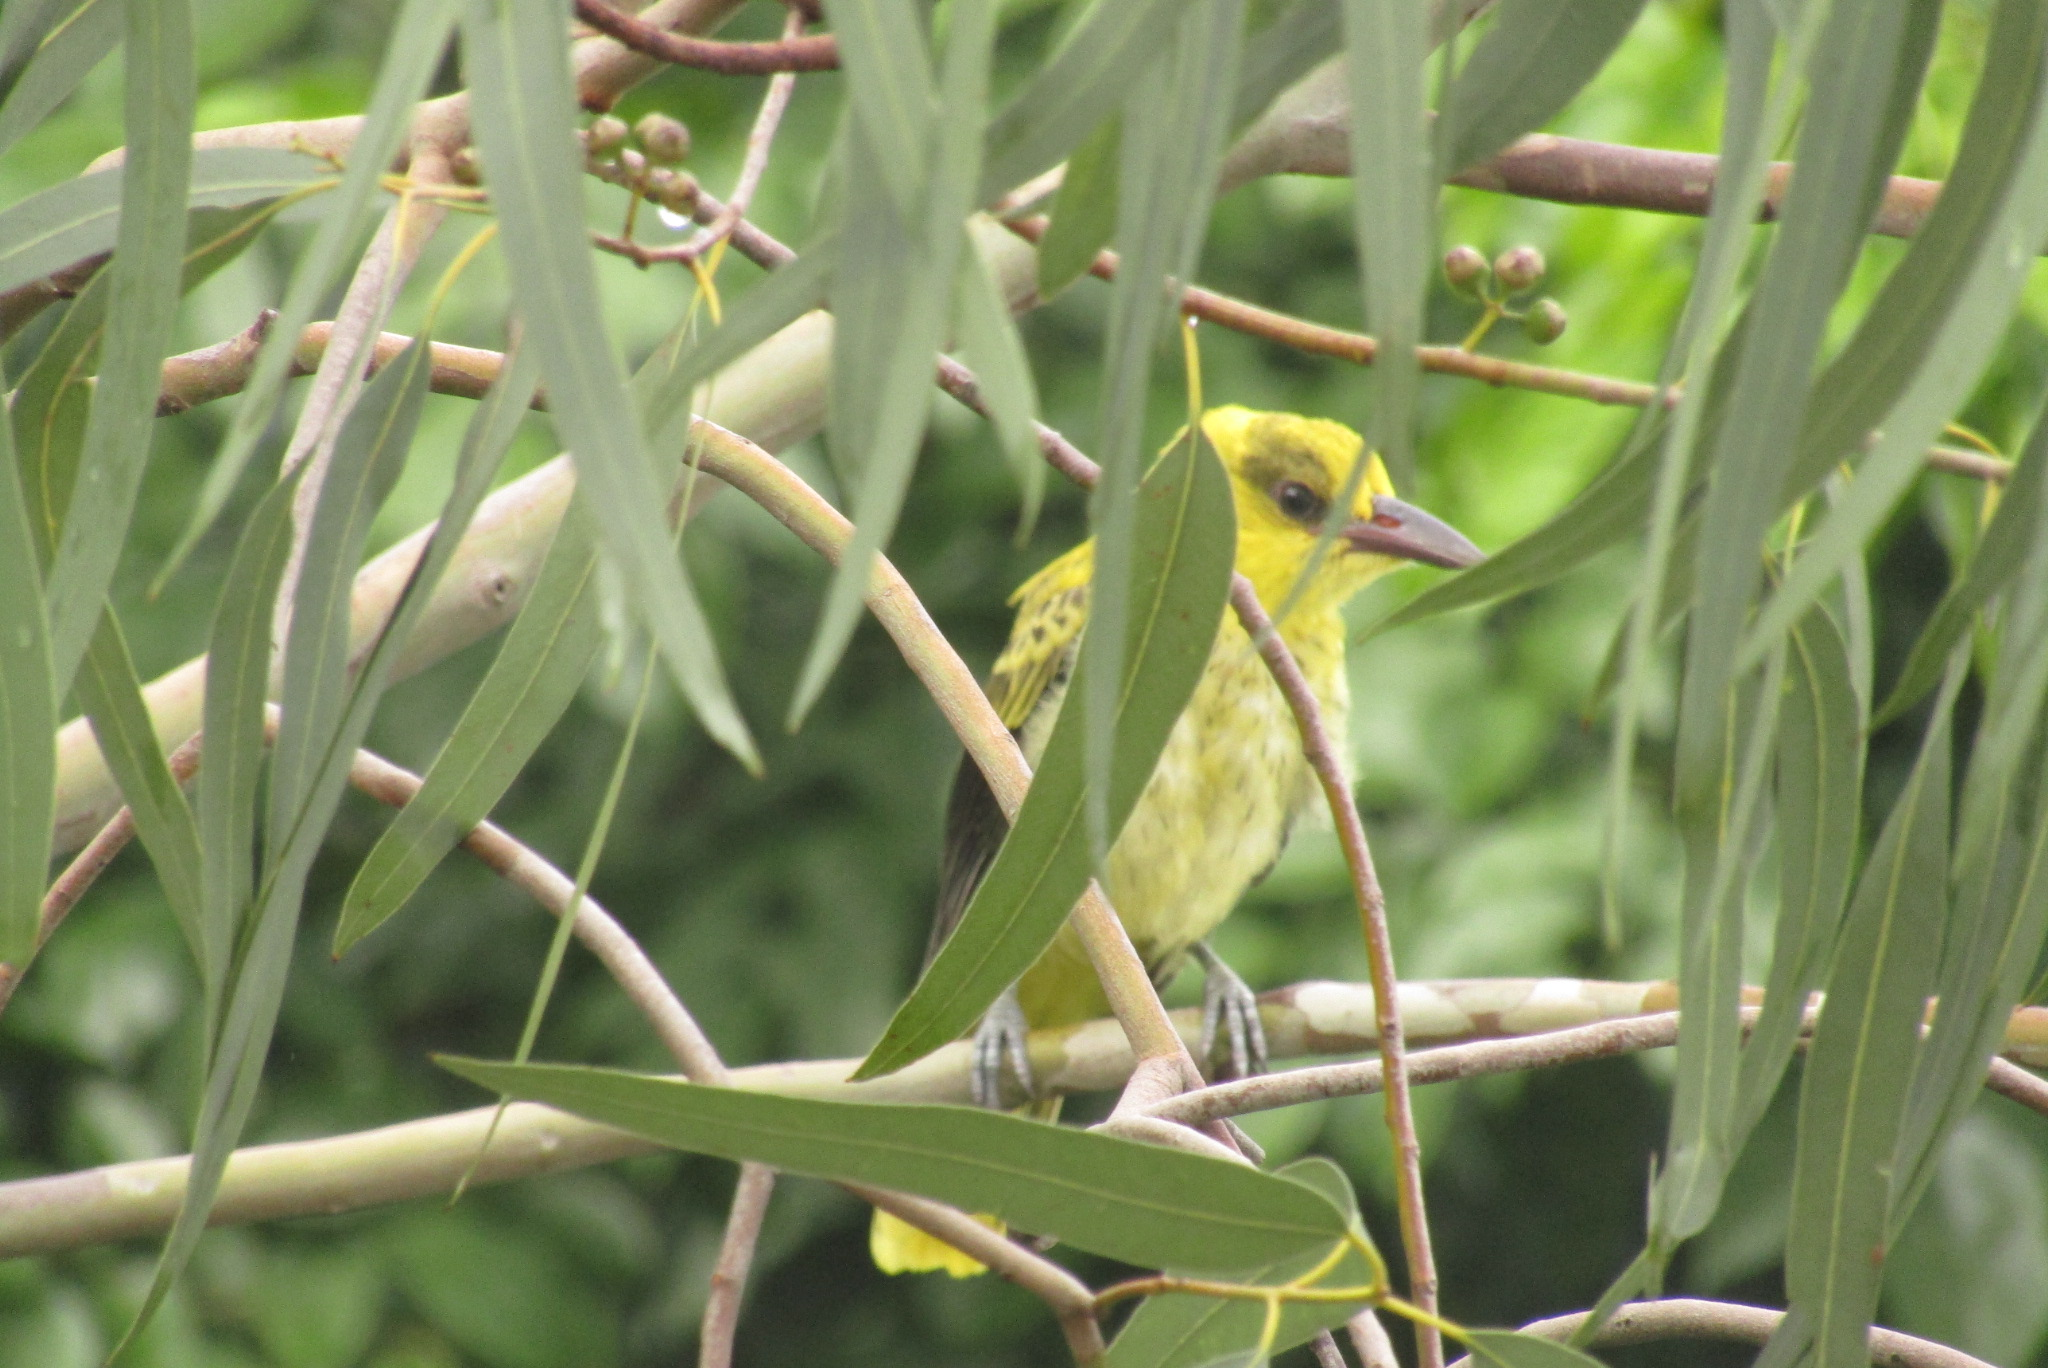 Black-naped Oriole - A juvenile black-naped oriole sounds like a lost kitten. I watched this one every morning for the better part of a week.